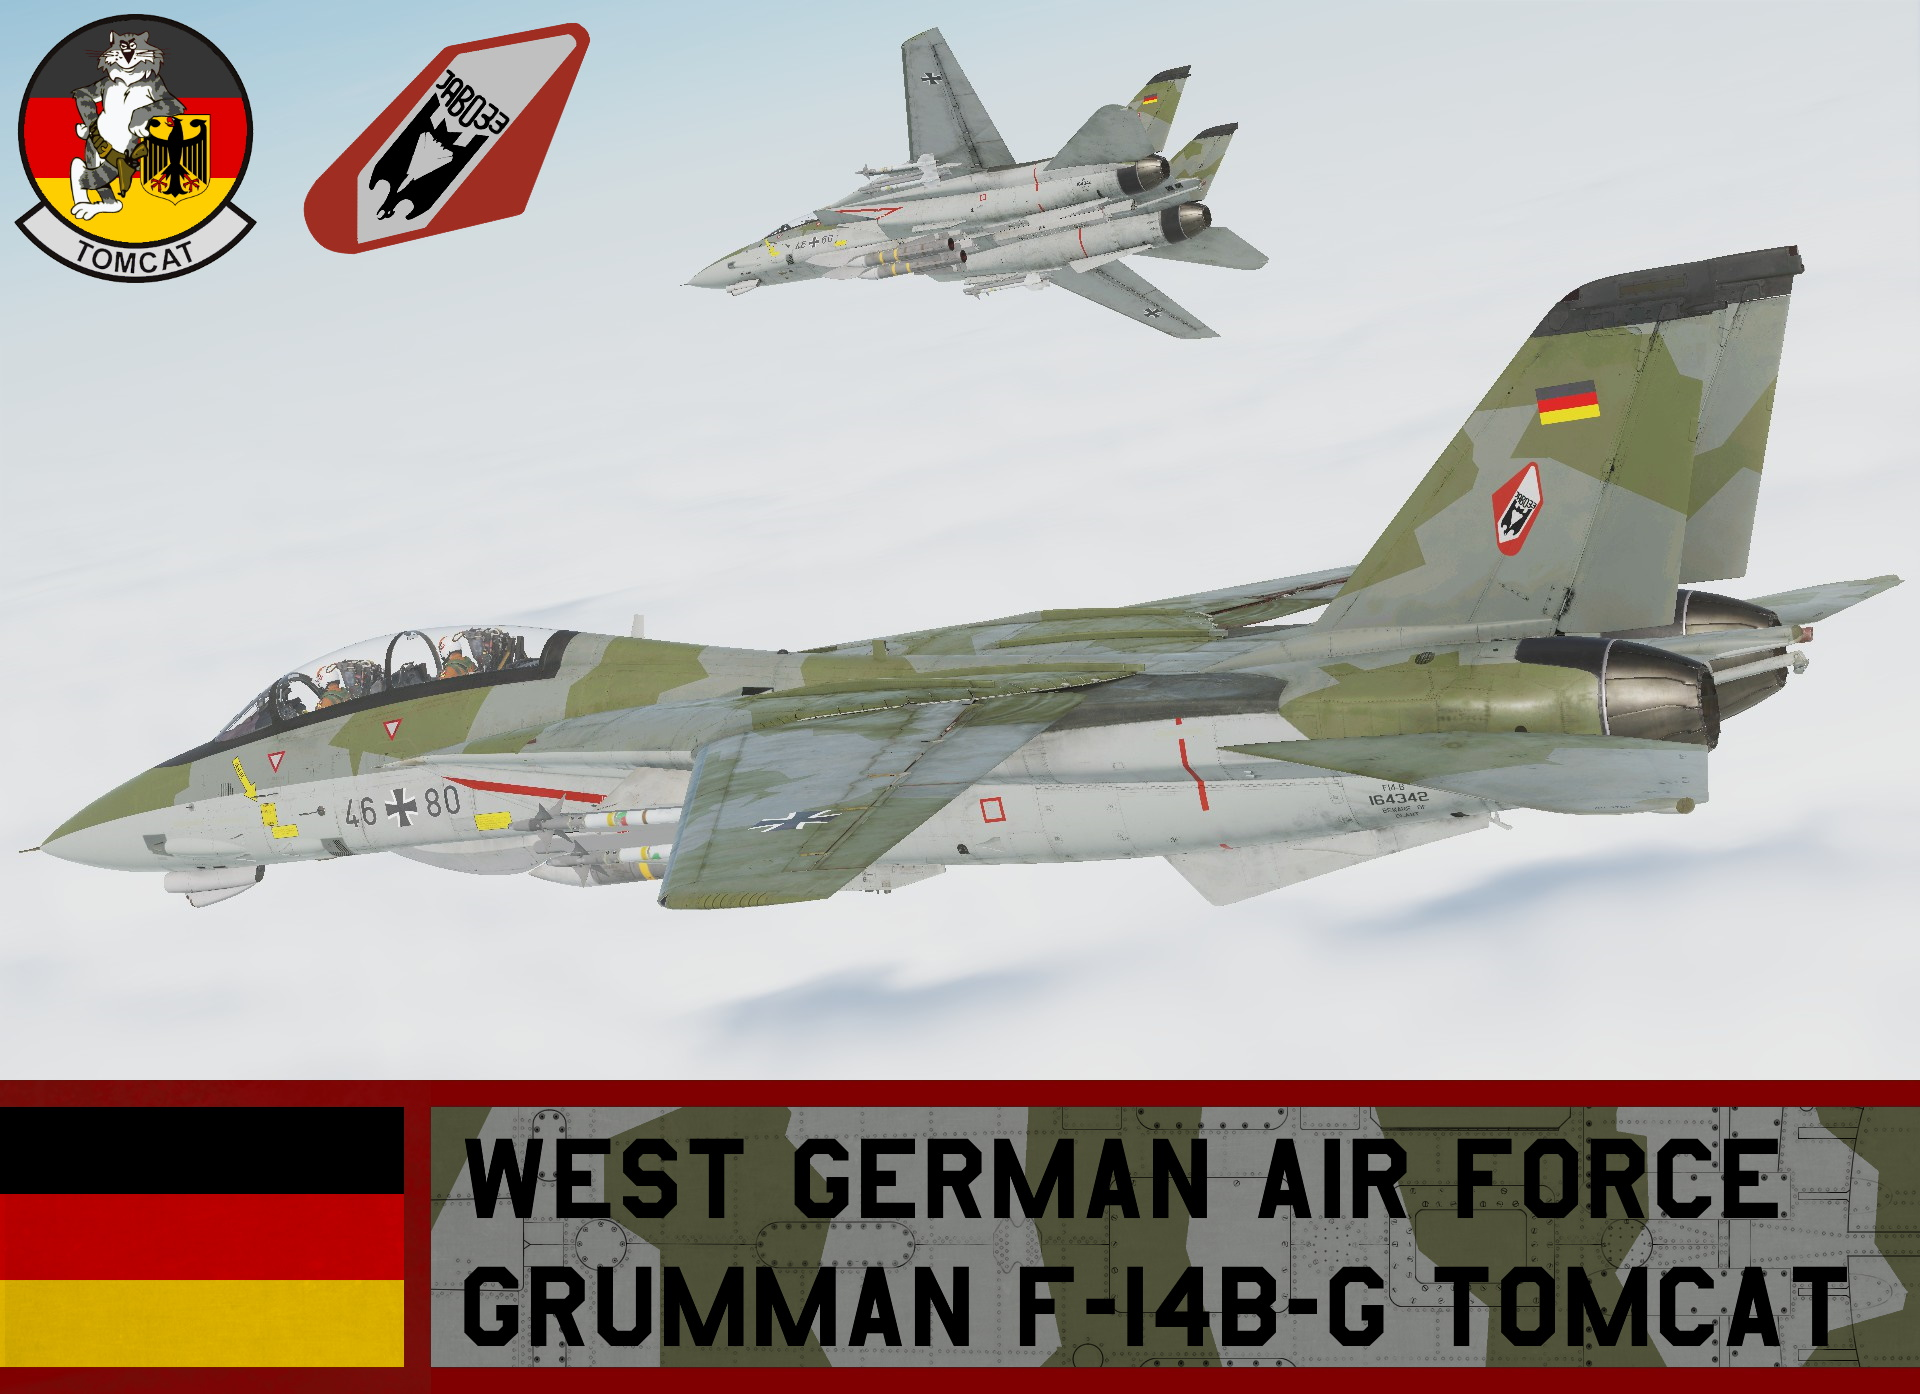 West German Air Force F-14B-G Tomcat (Fictional)